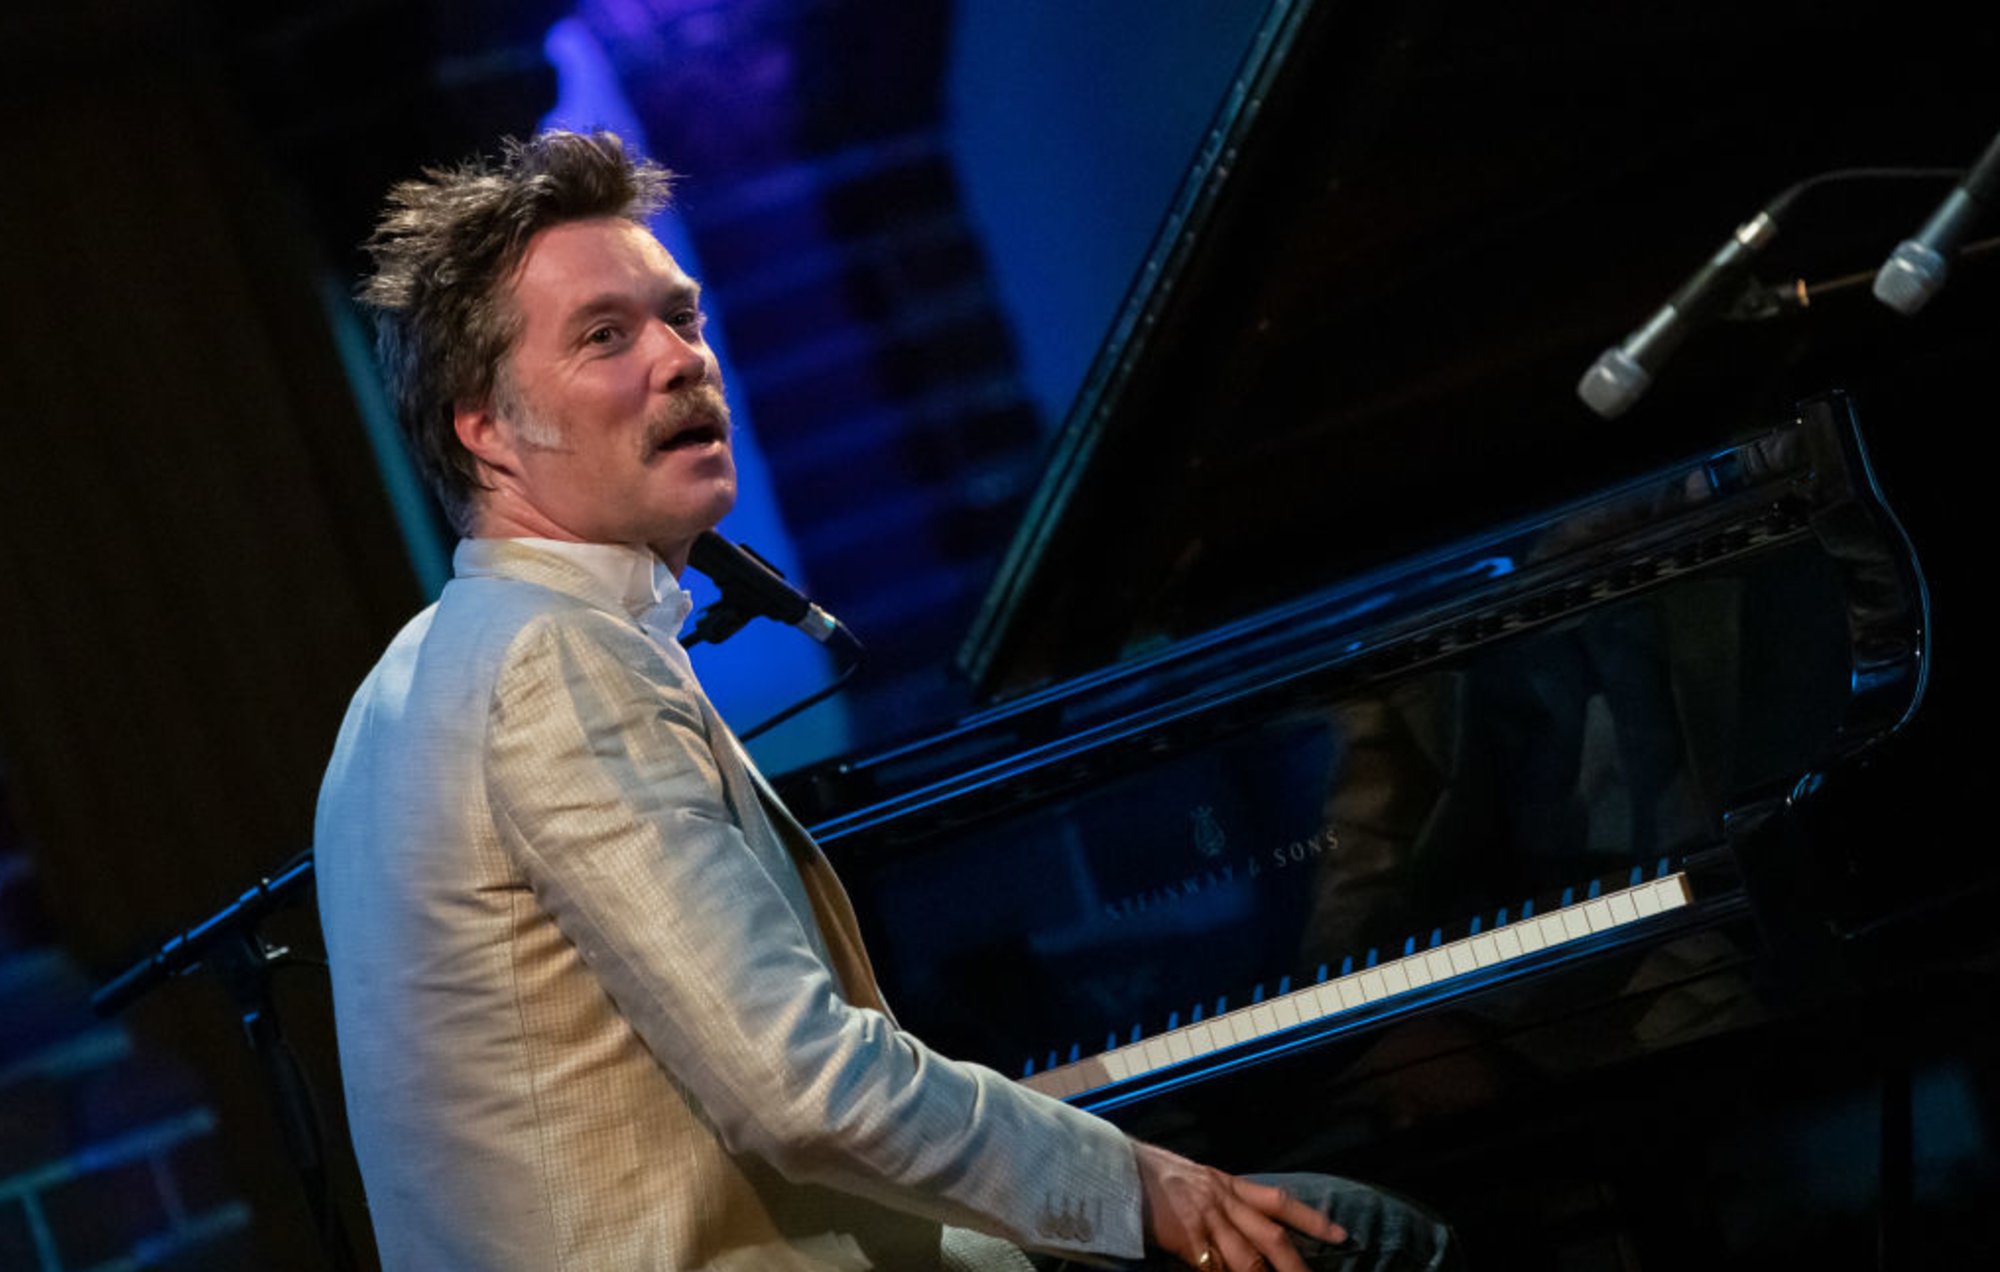 Watch Rufus Wainwright cover Stephen Foster's 'Hard Times' with family and friends